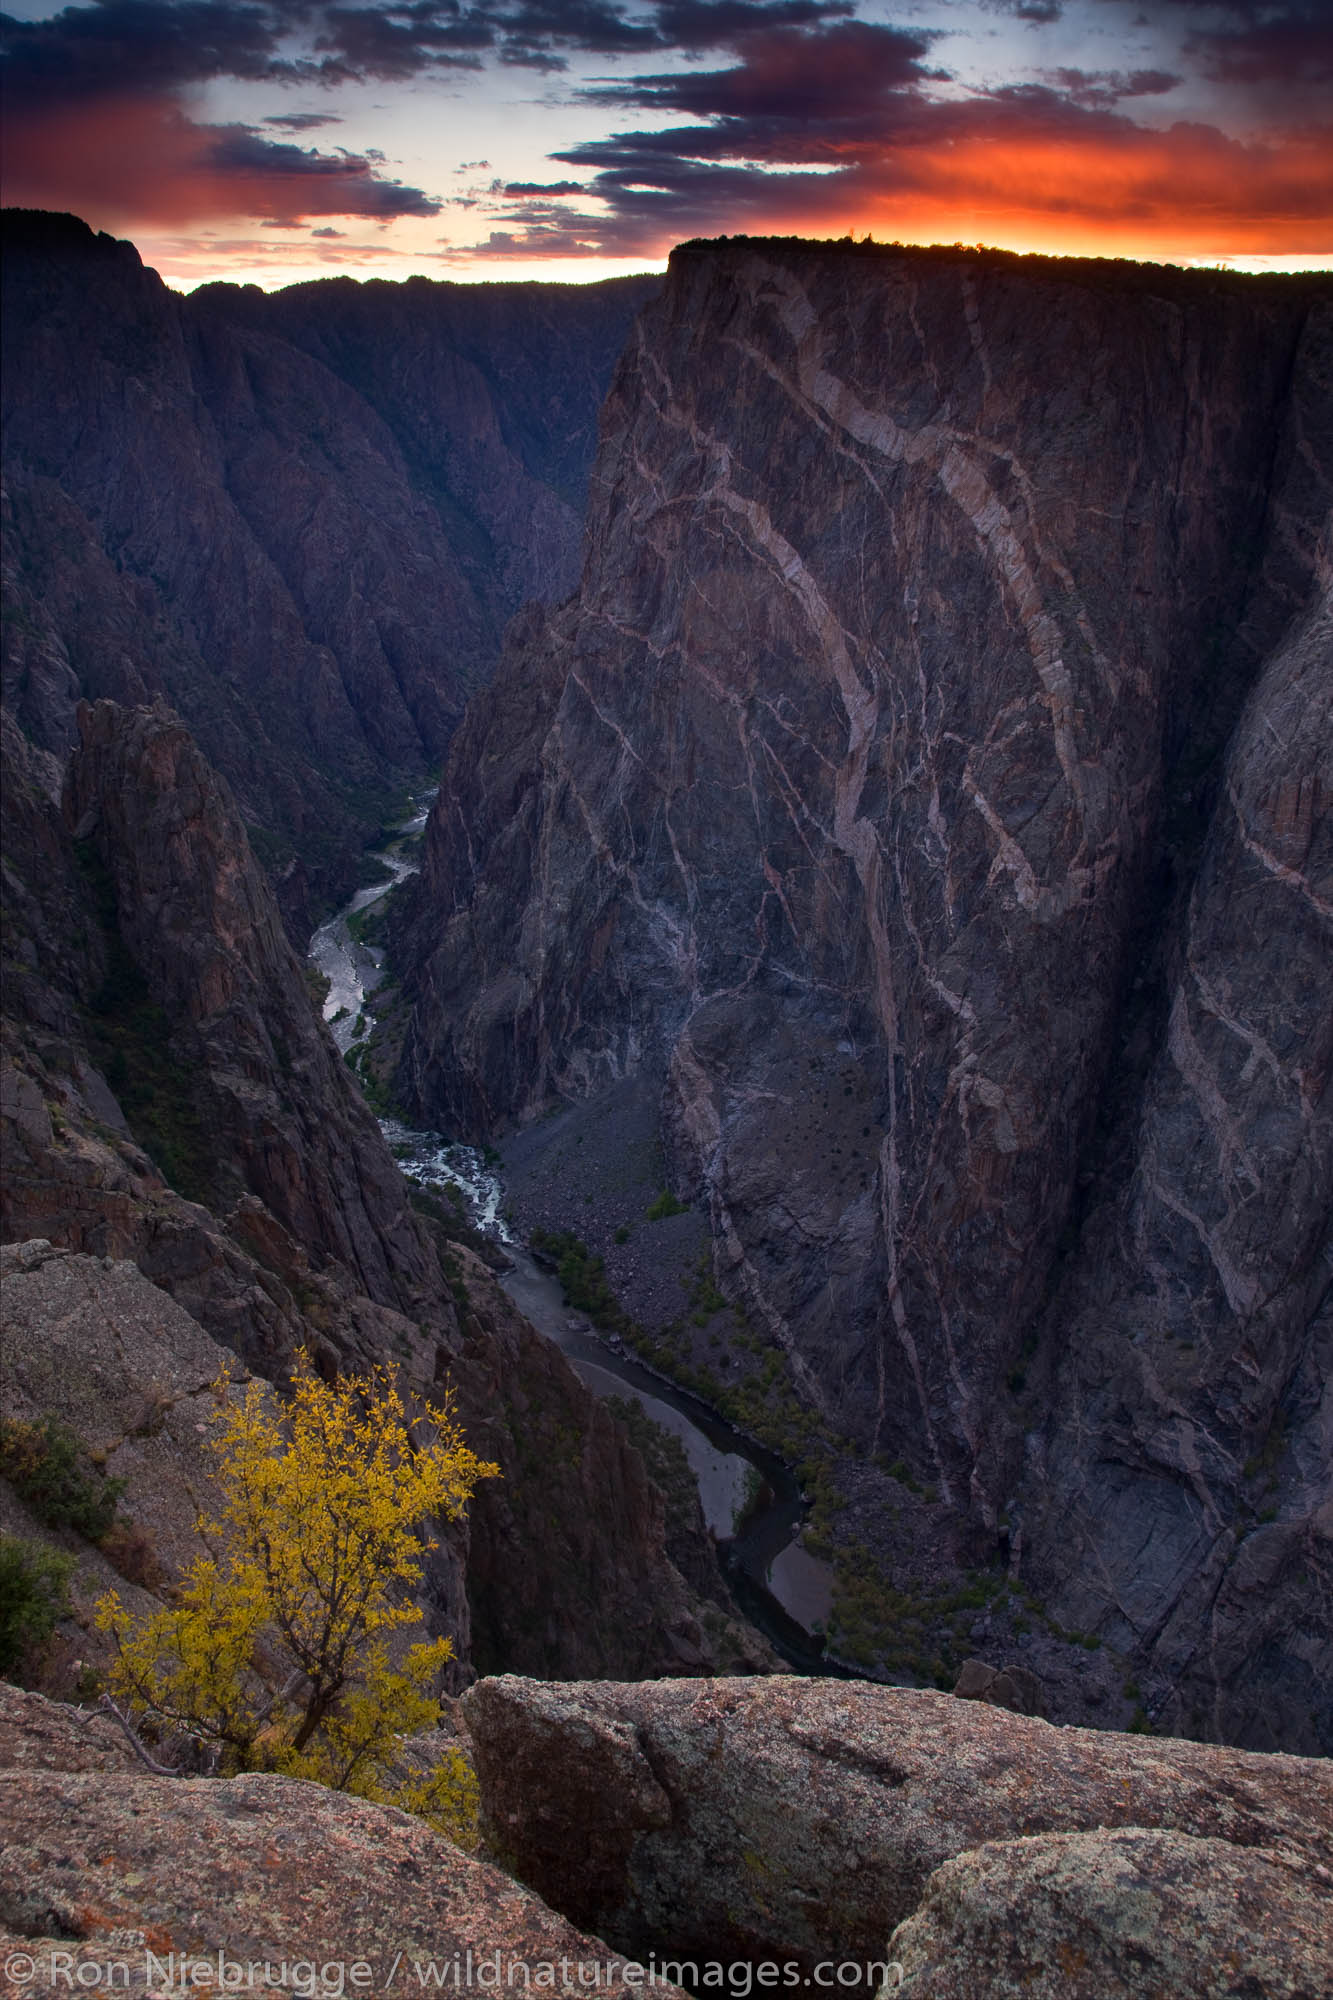 Painted Wall, Black Canyon of the Gunnison National Park, Colorado.